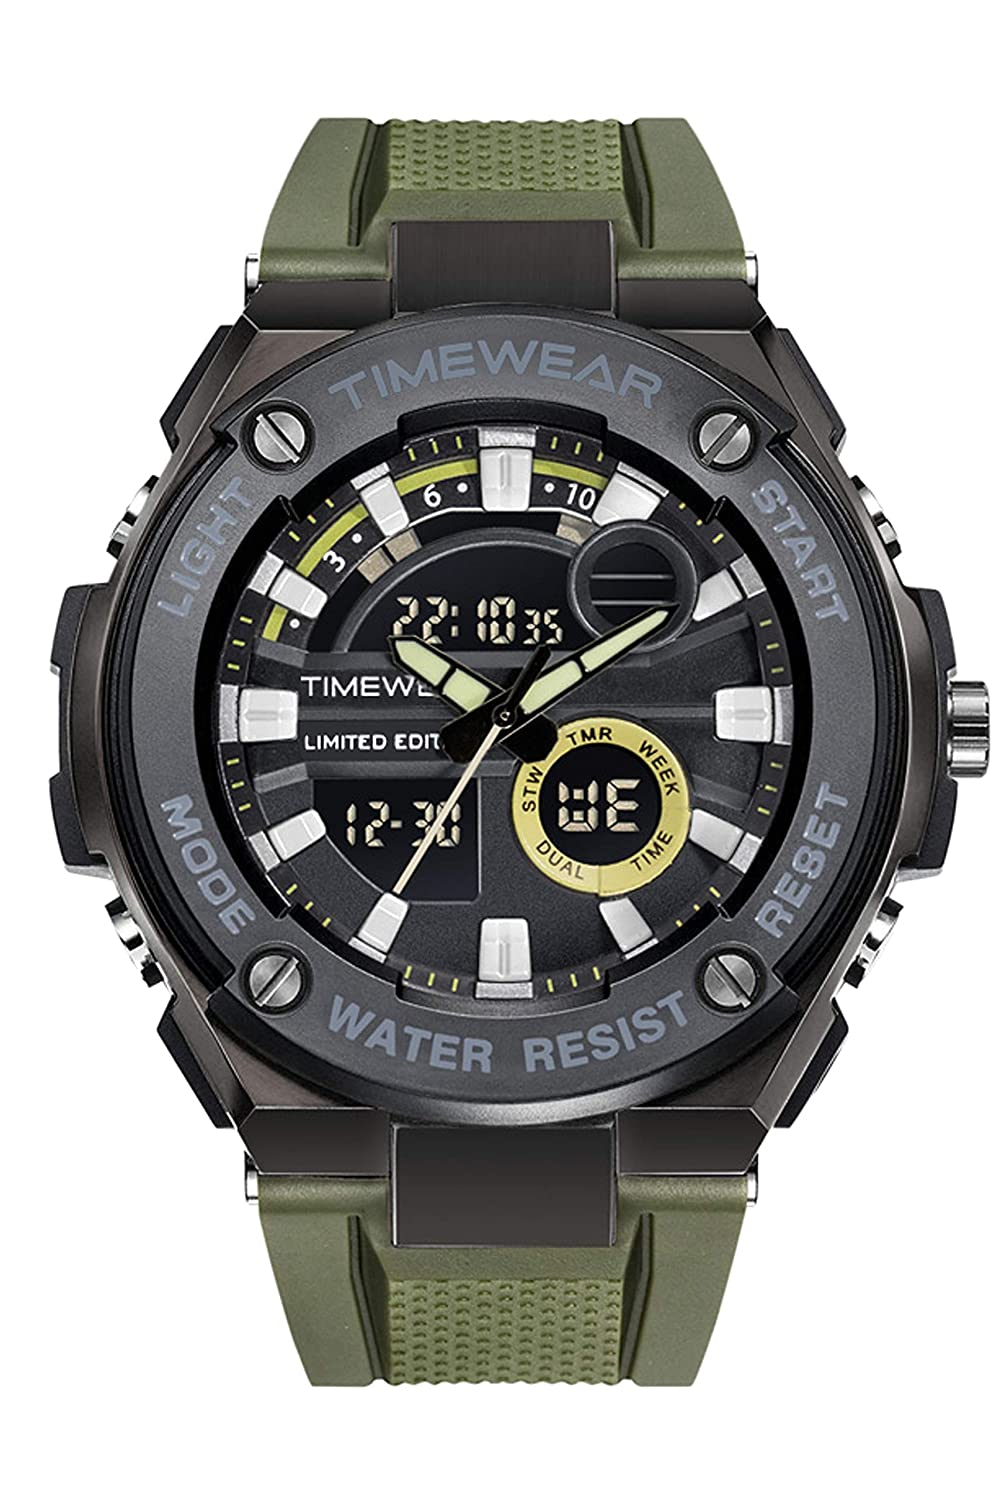 TIMEWEAR Limited Edition Analog Digital Army Green Strap